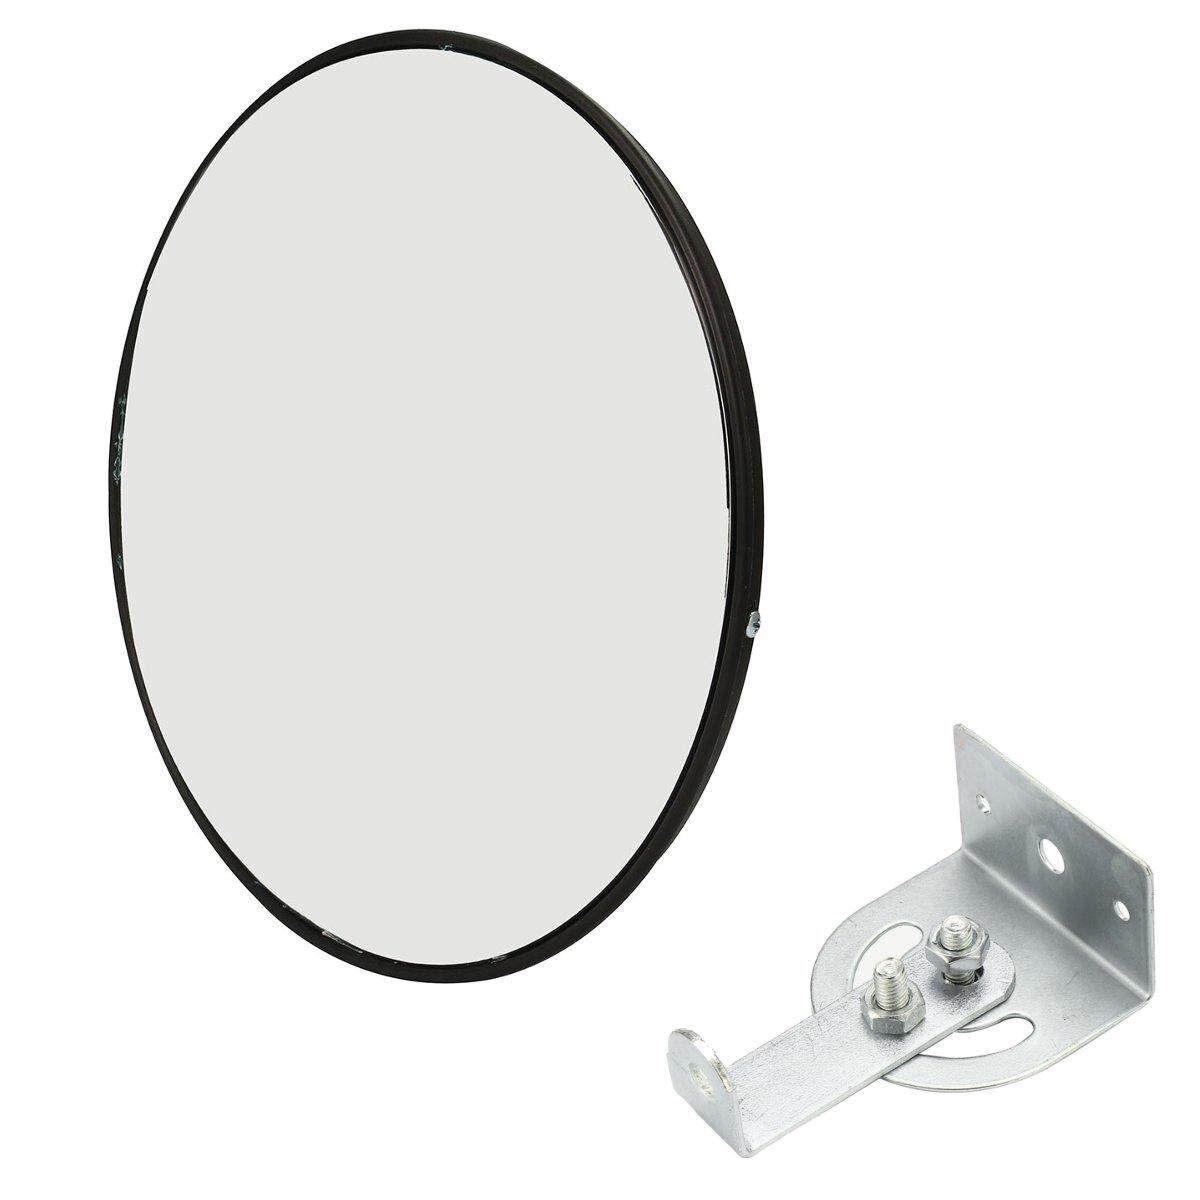 30/45/60cm Traffic Safety Wide-Angle Mirror Angle Convex Security Wall Dome 60cm By Glimmer.